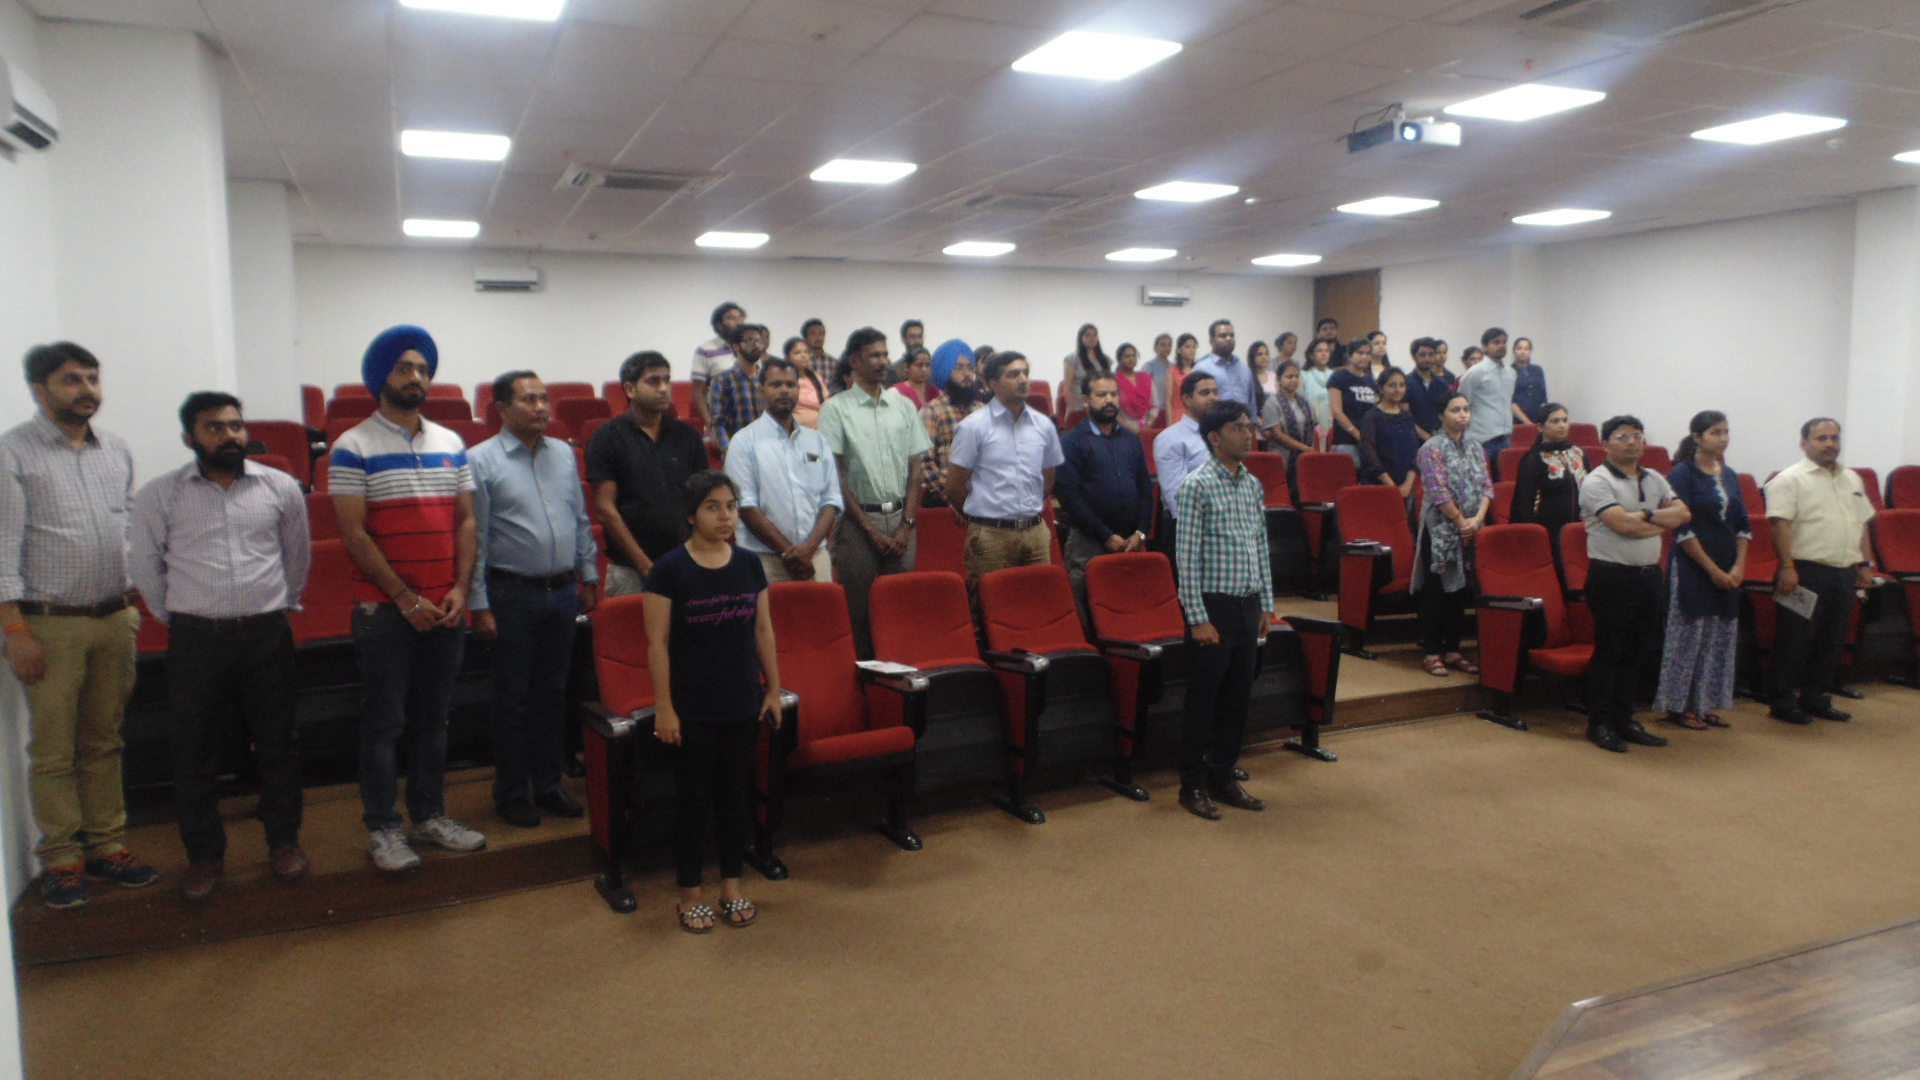 CIAB Mohali observed Anti-terrorism Day on 21-05-2018